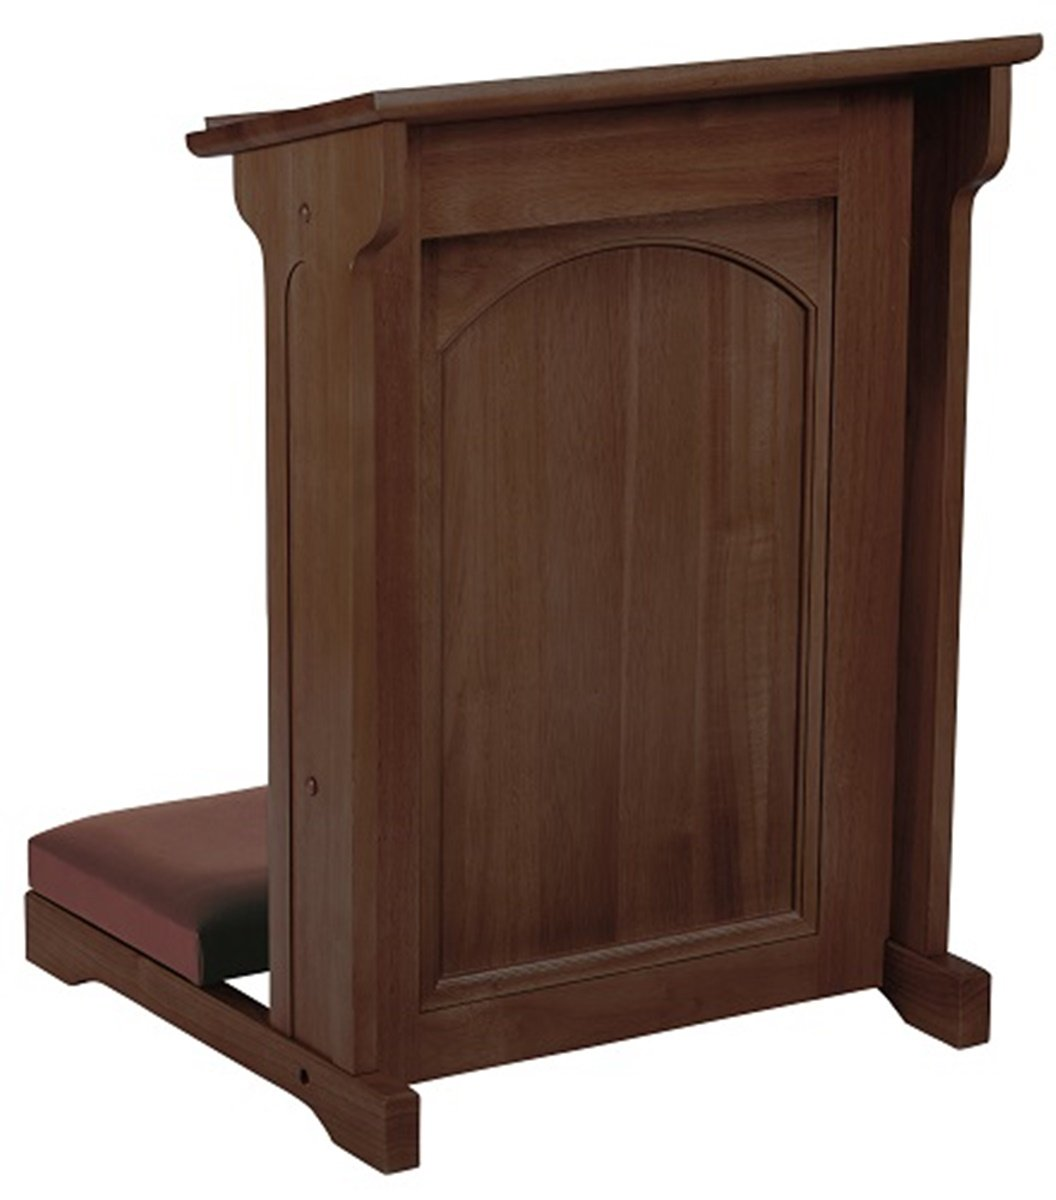 Eastern Maple Hardwood Padded Church Kneeler in Walnut Stain Finish, 24 Inch